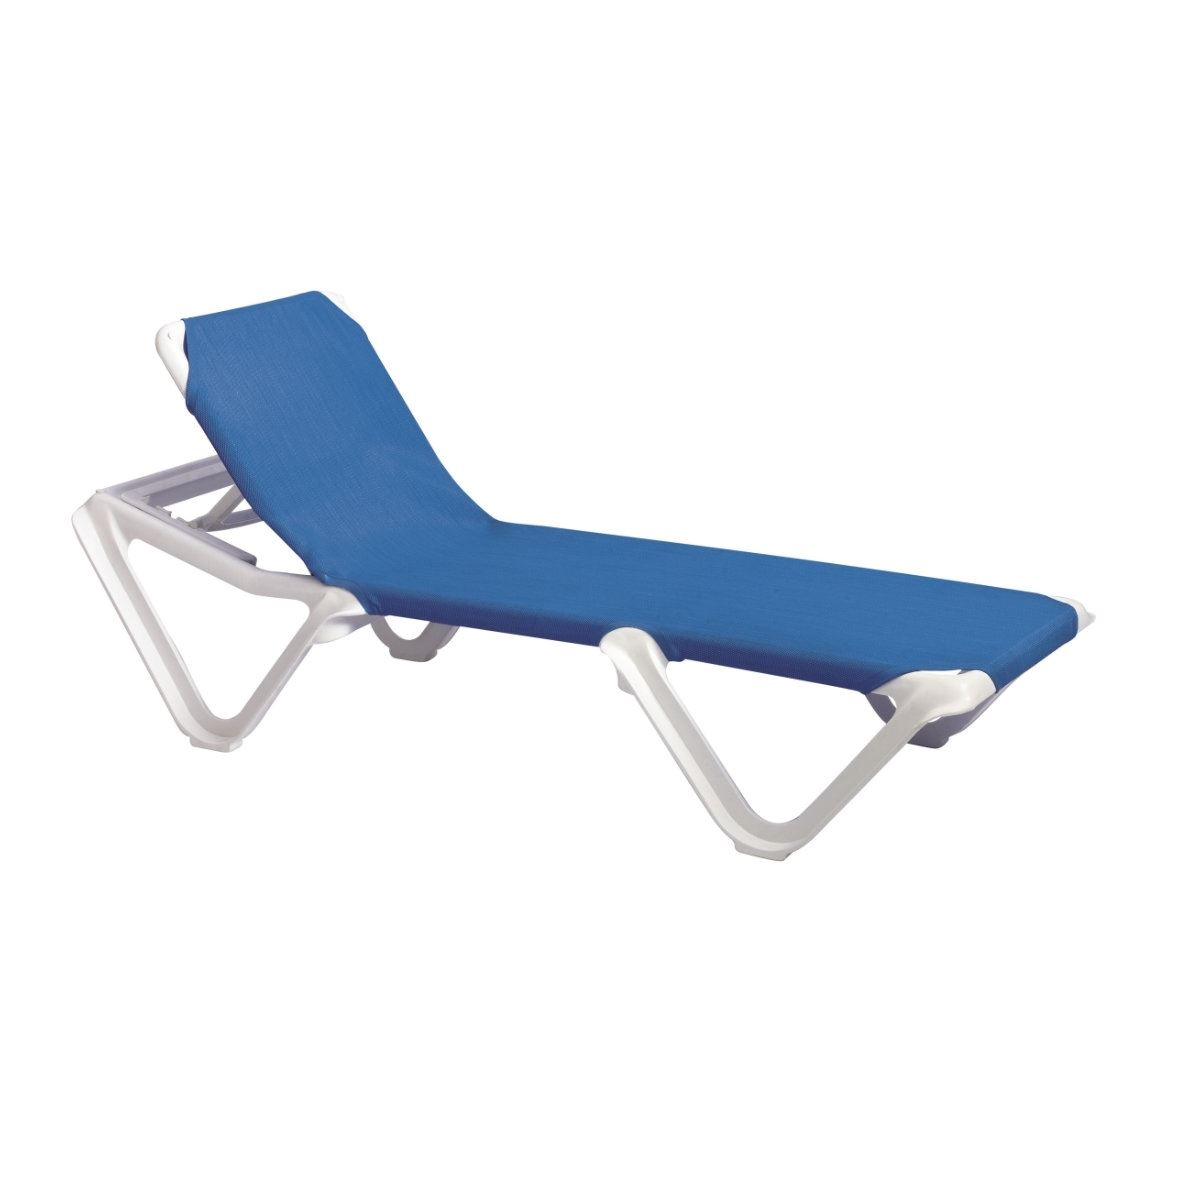 white plastic lounge chairs stackable mesh patio chaise frame sling resin nautical pool